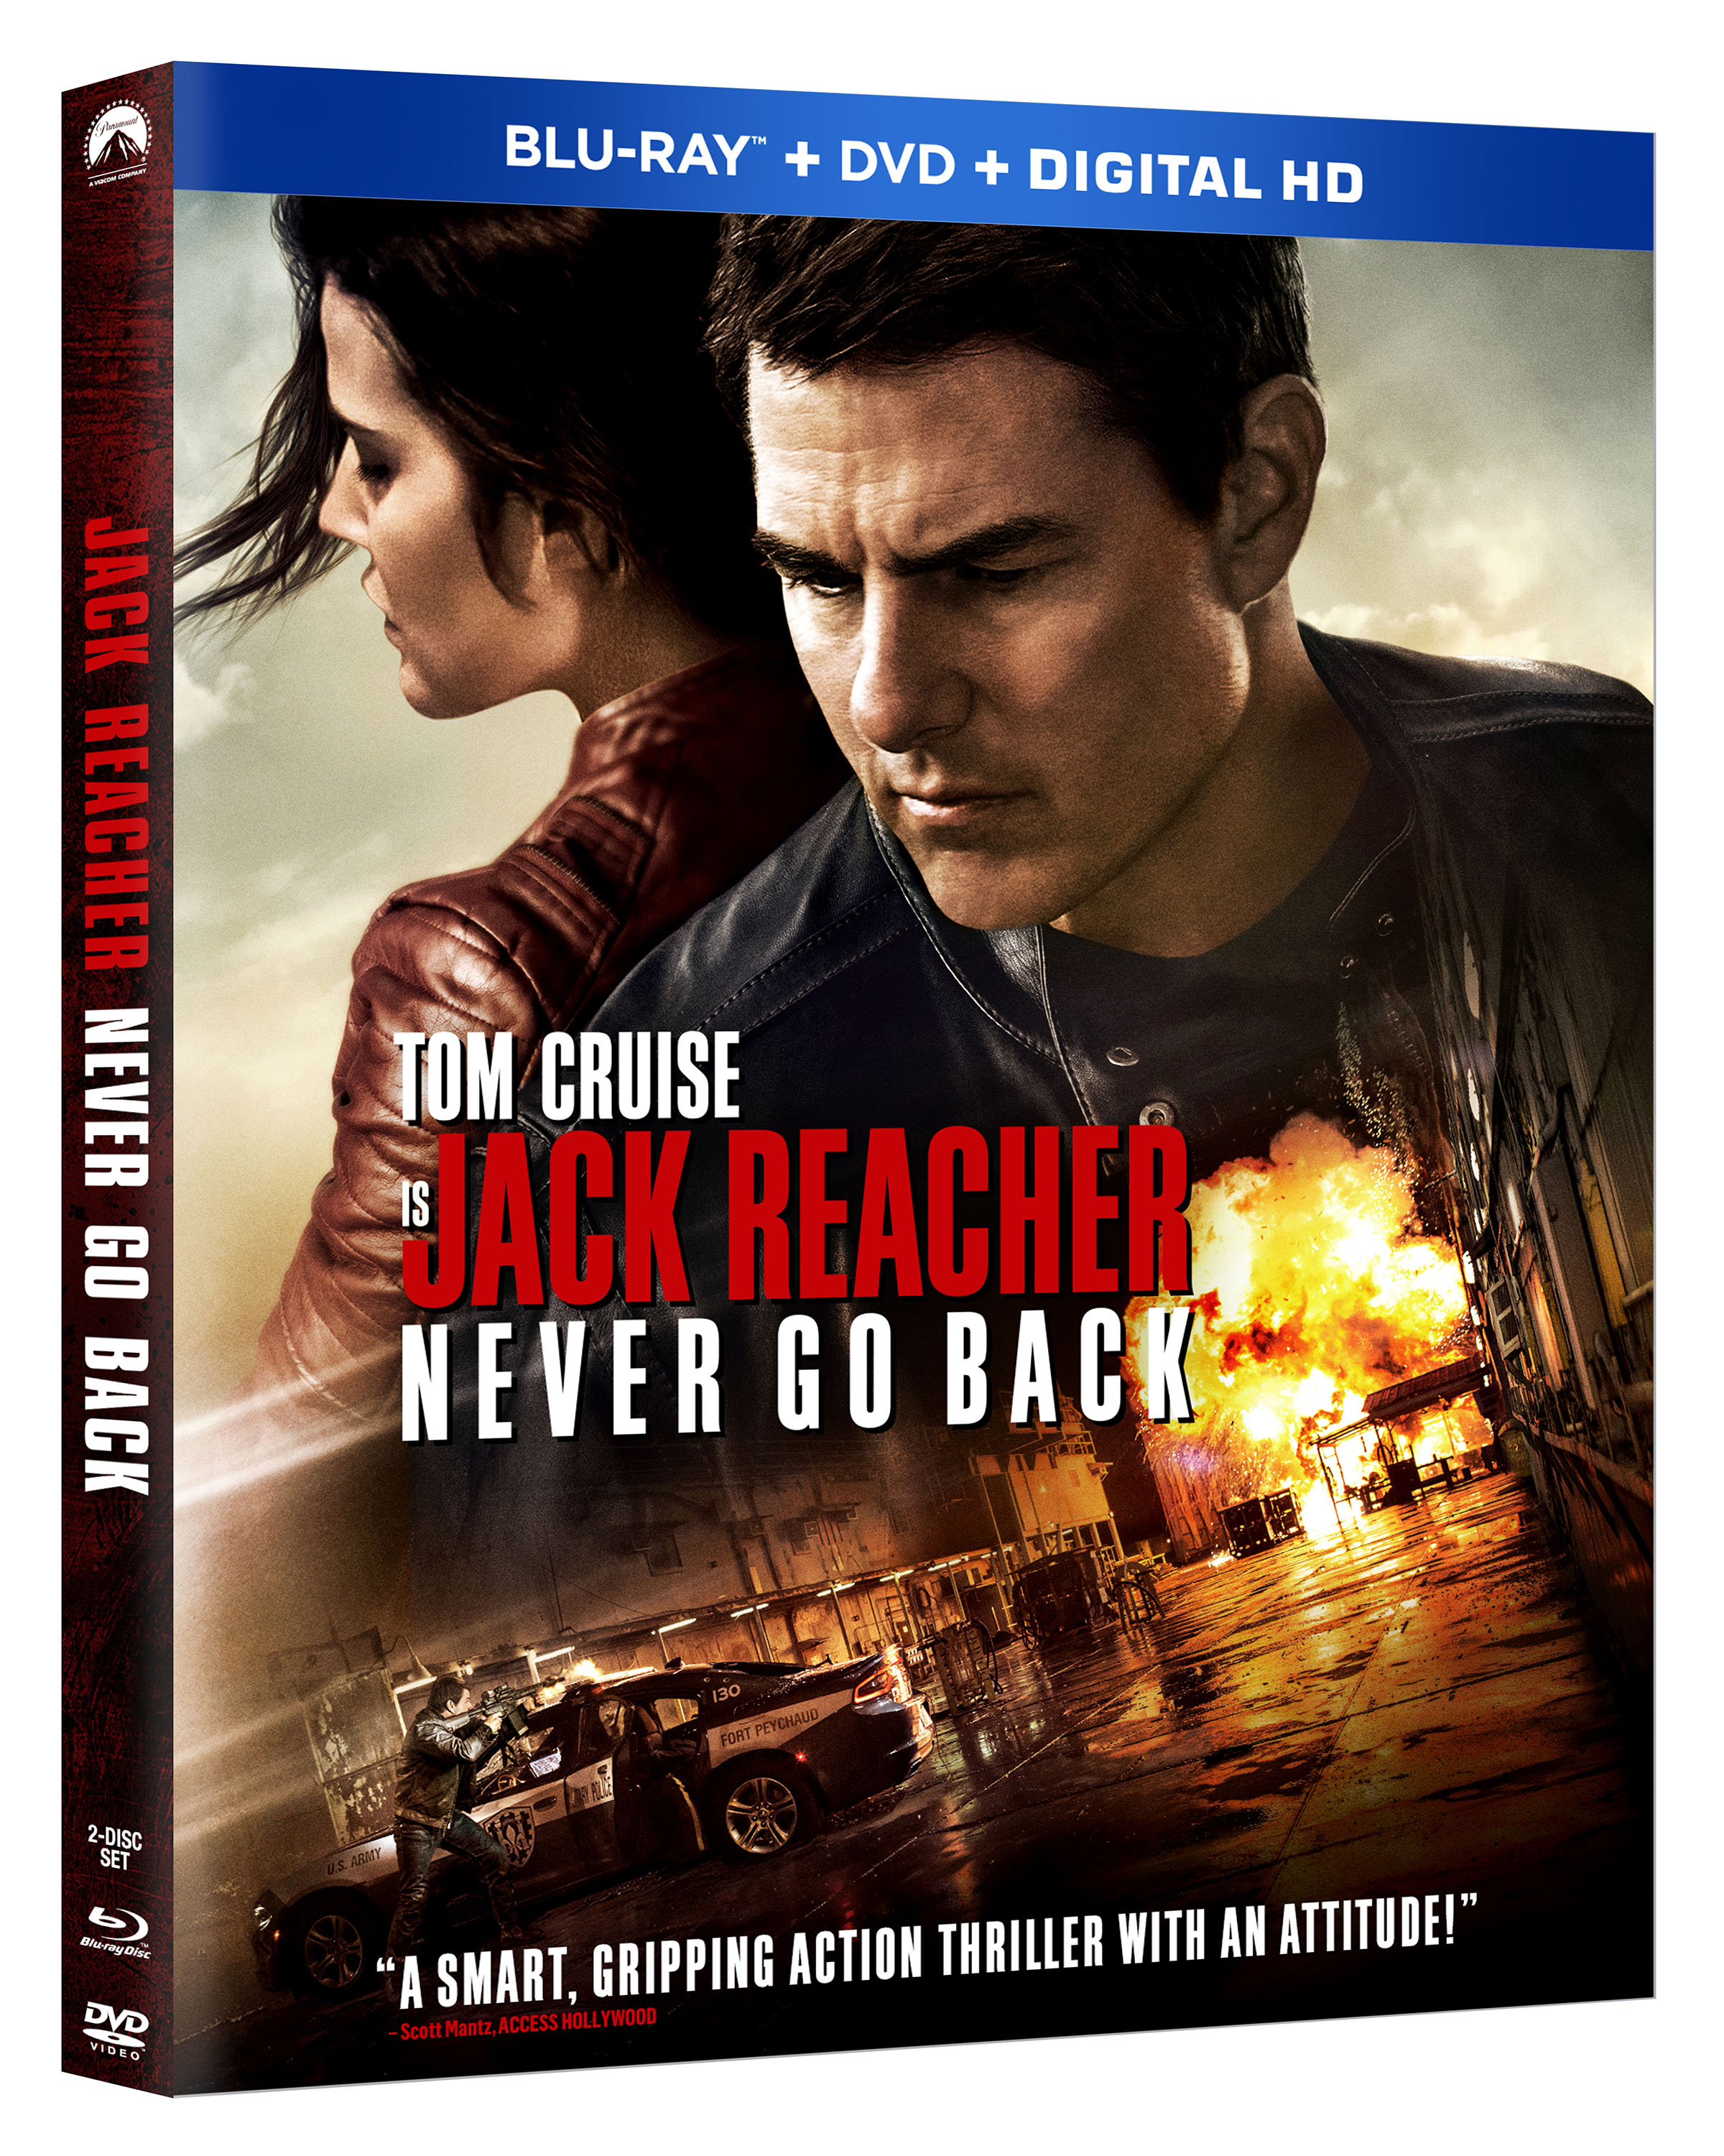 jack_reacher_never_go_back_blu-ray_3d_cover